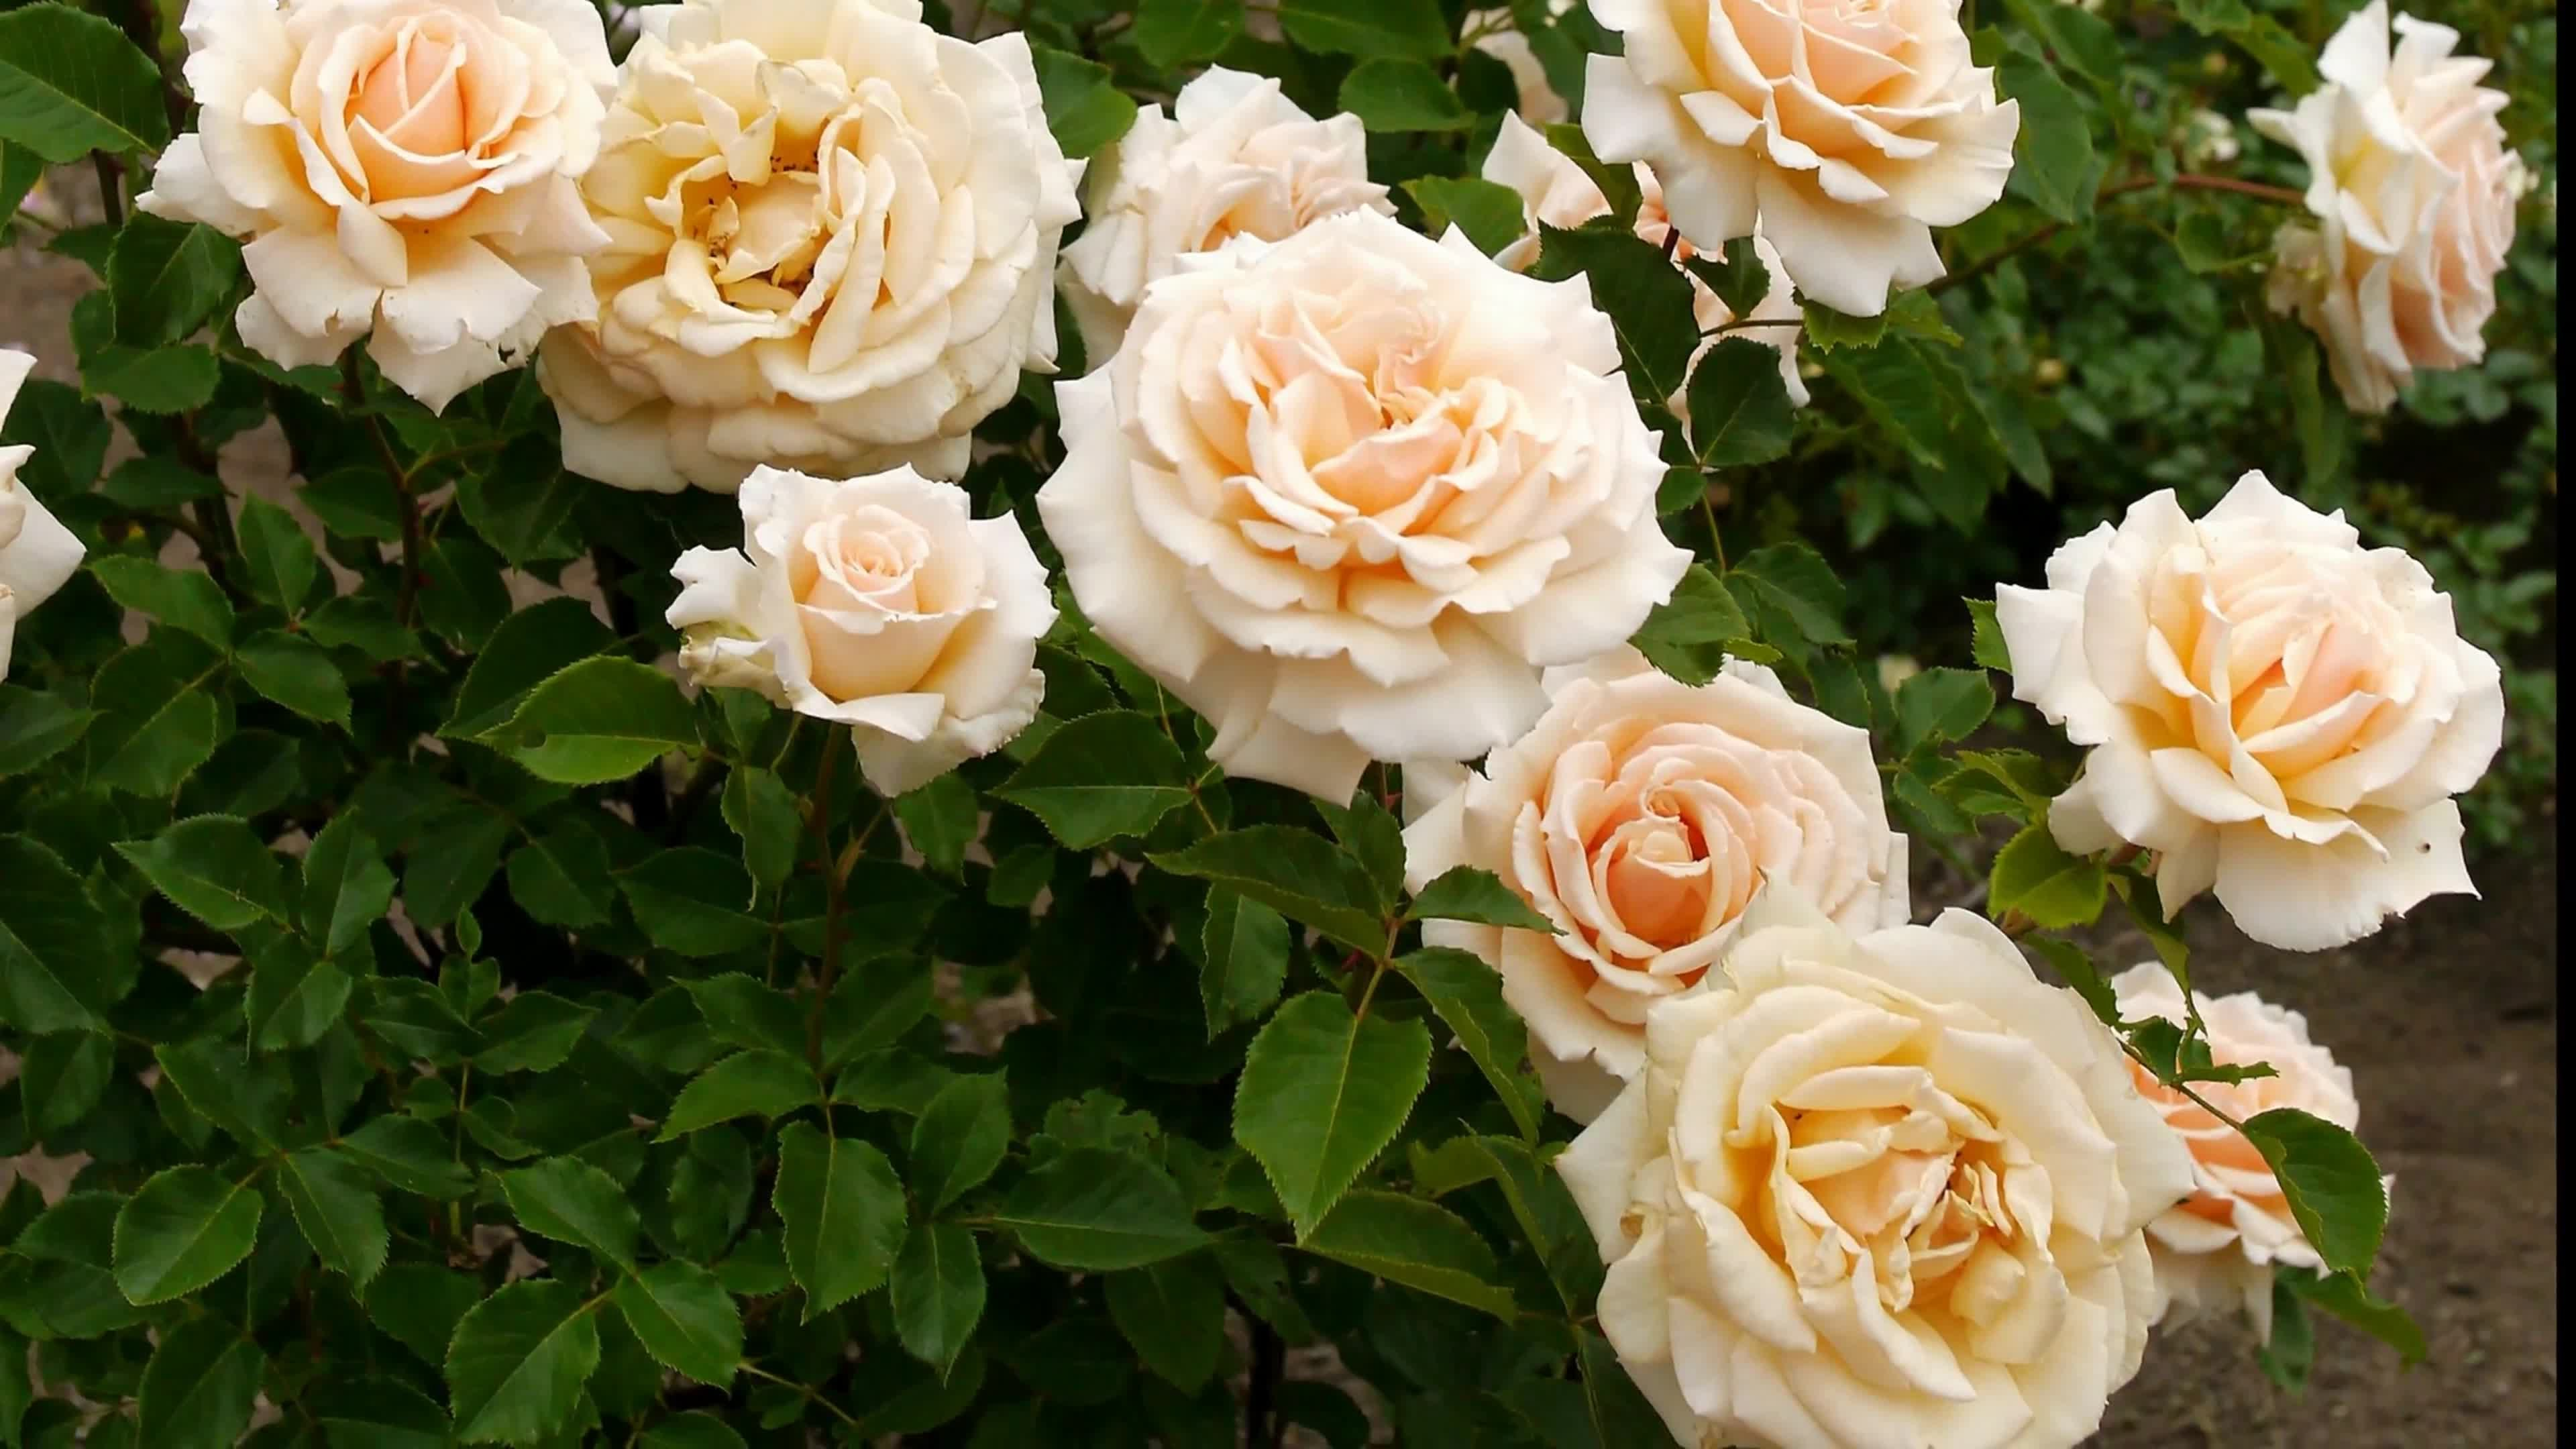 Very beautiful flowers images